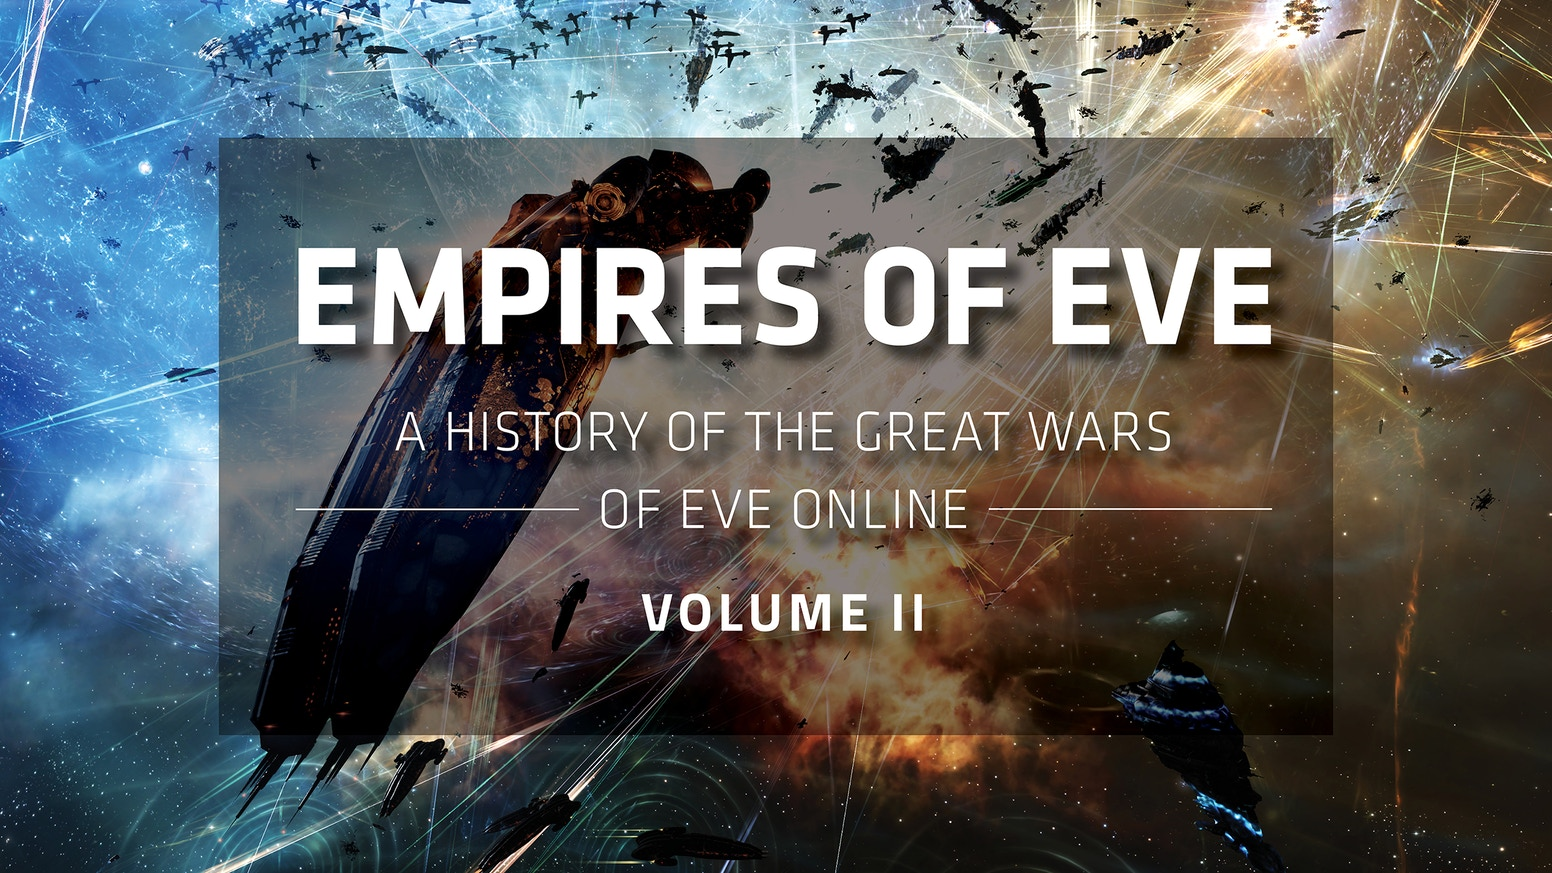 Empires of eve volume ii by andrew groen kickstarter the non fiction history of the most interesting game ever made eve online and a standalone sequel to the first empires of eve book fandeluxe Gallery